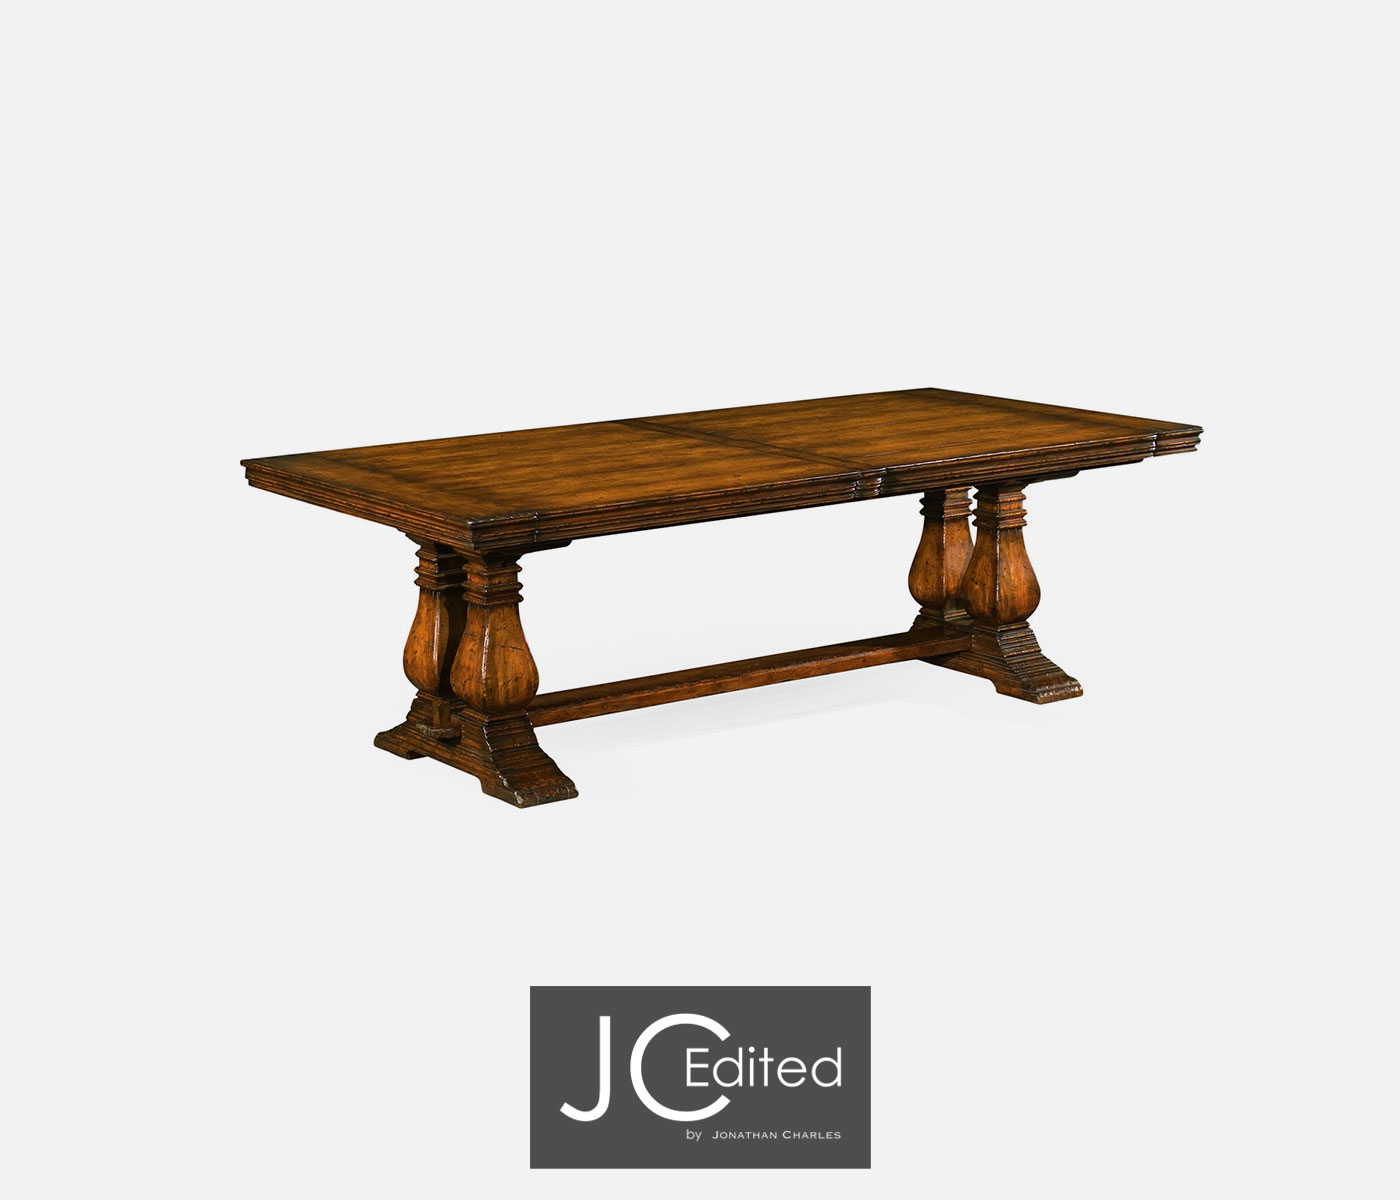 Figured Walnut Large Extending Refectory Table. Mirrored Coffee Table Tray. Where To Buy Computer Desks. Ideal Height For Standing Desk. Kids Craft Tables. 42 Inch Writing Desk. Small Drawer Storage. Owl Desk Lamp. Drawer Refrigerators